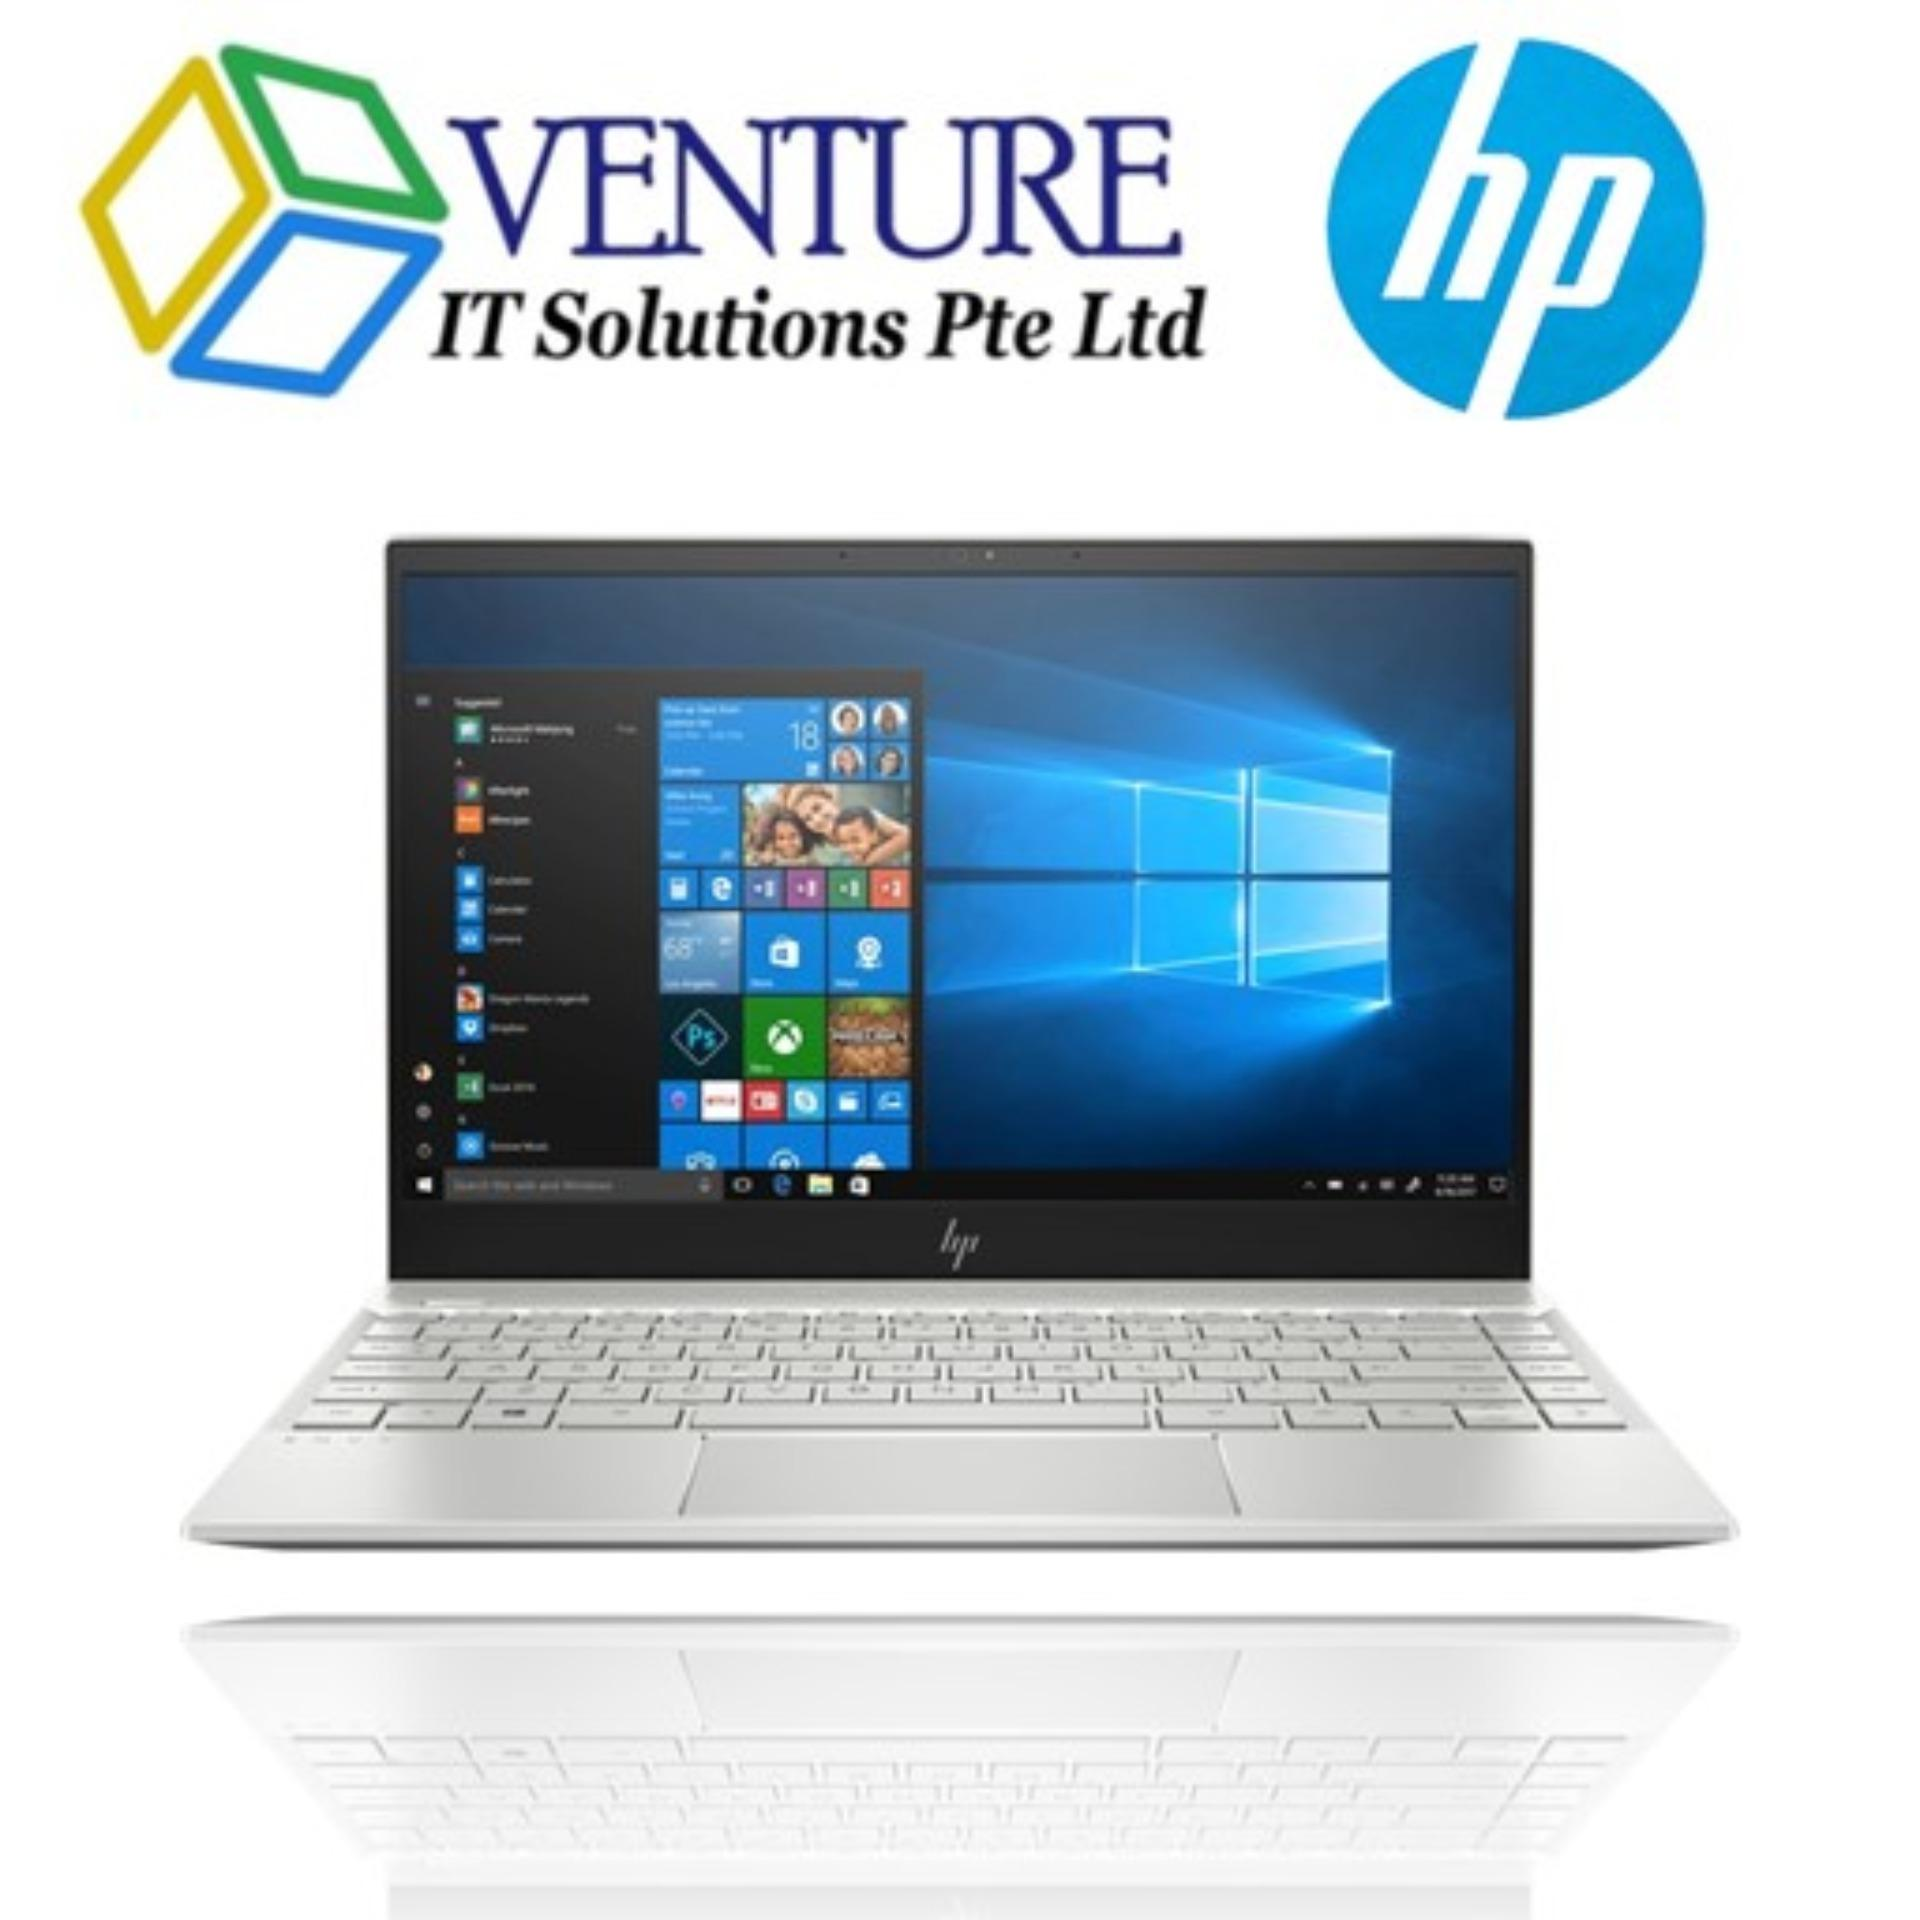 [NEW ARRIVAL 8TH GEN] HP ENVY 13 AH0031TU i7-8550U 8GB 512SSD 13.3FHD WIN10 B&O-QUAD SPEAKERS